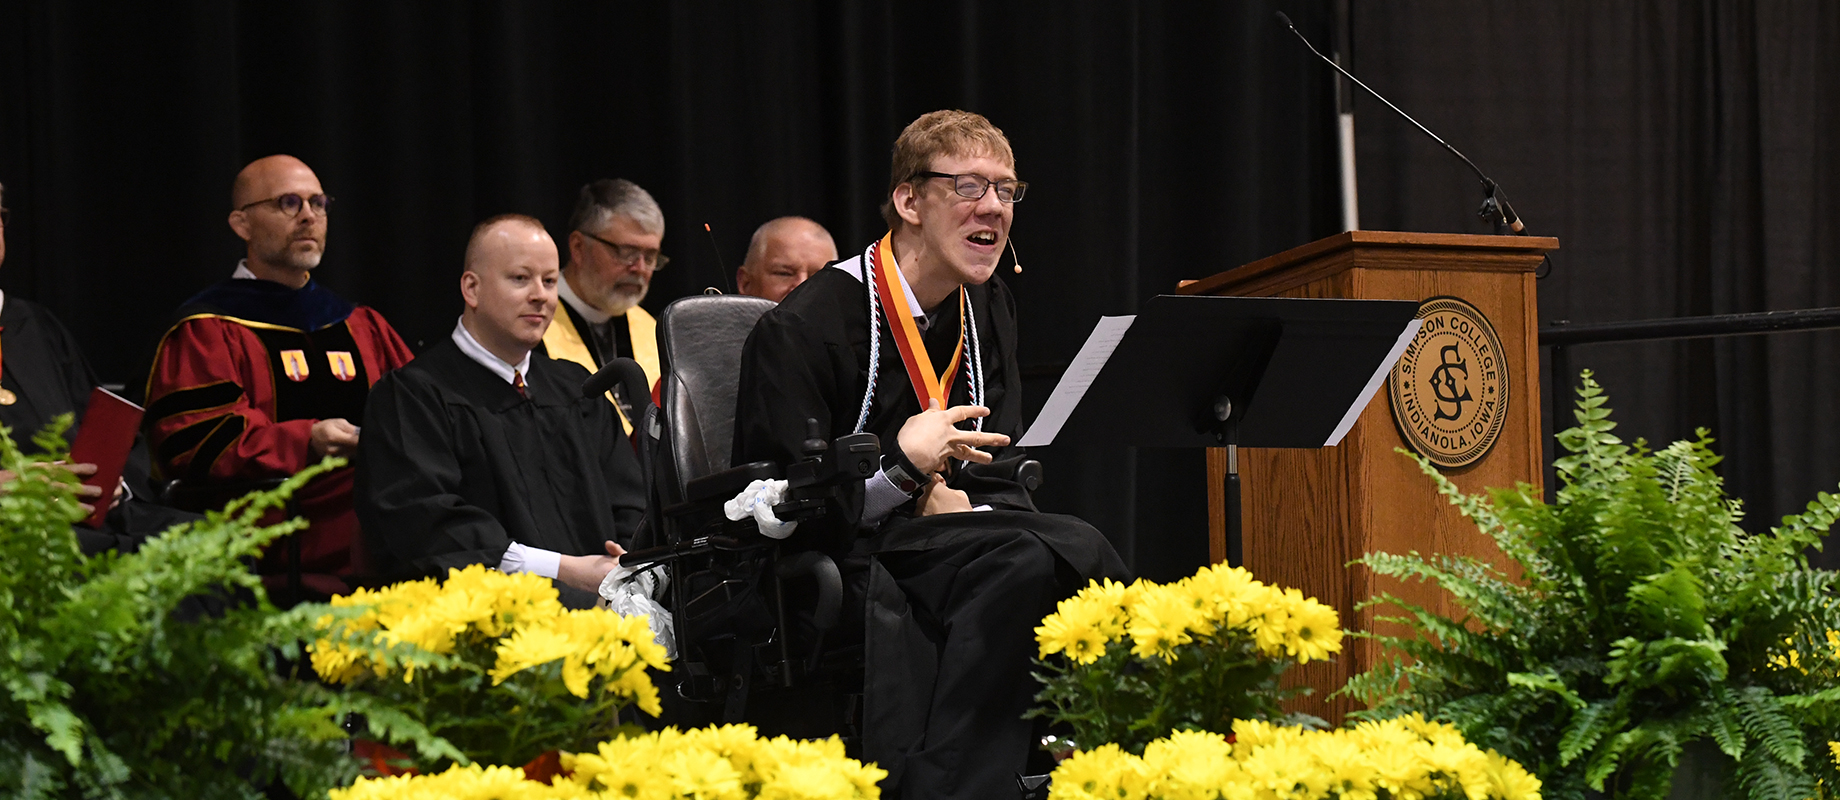 Alex Hoffman delivered the undergraduate student address at the 2019 commencement ceremony.